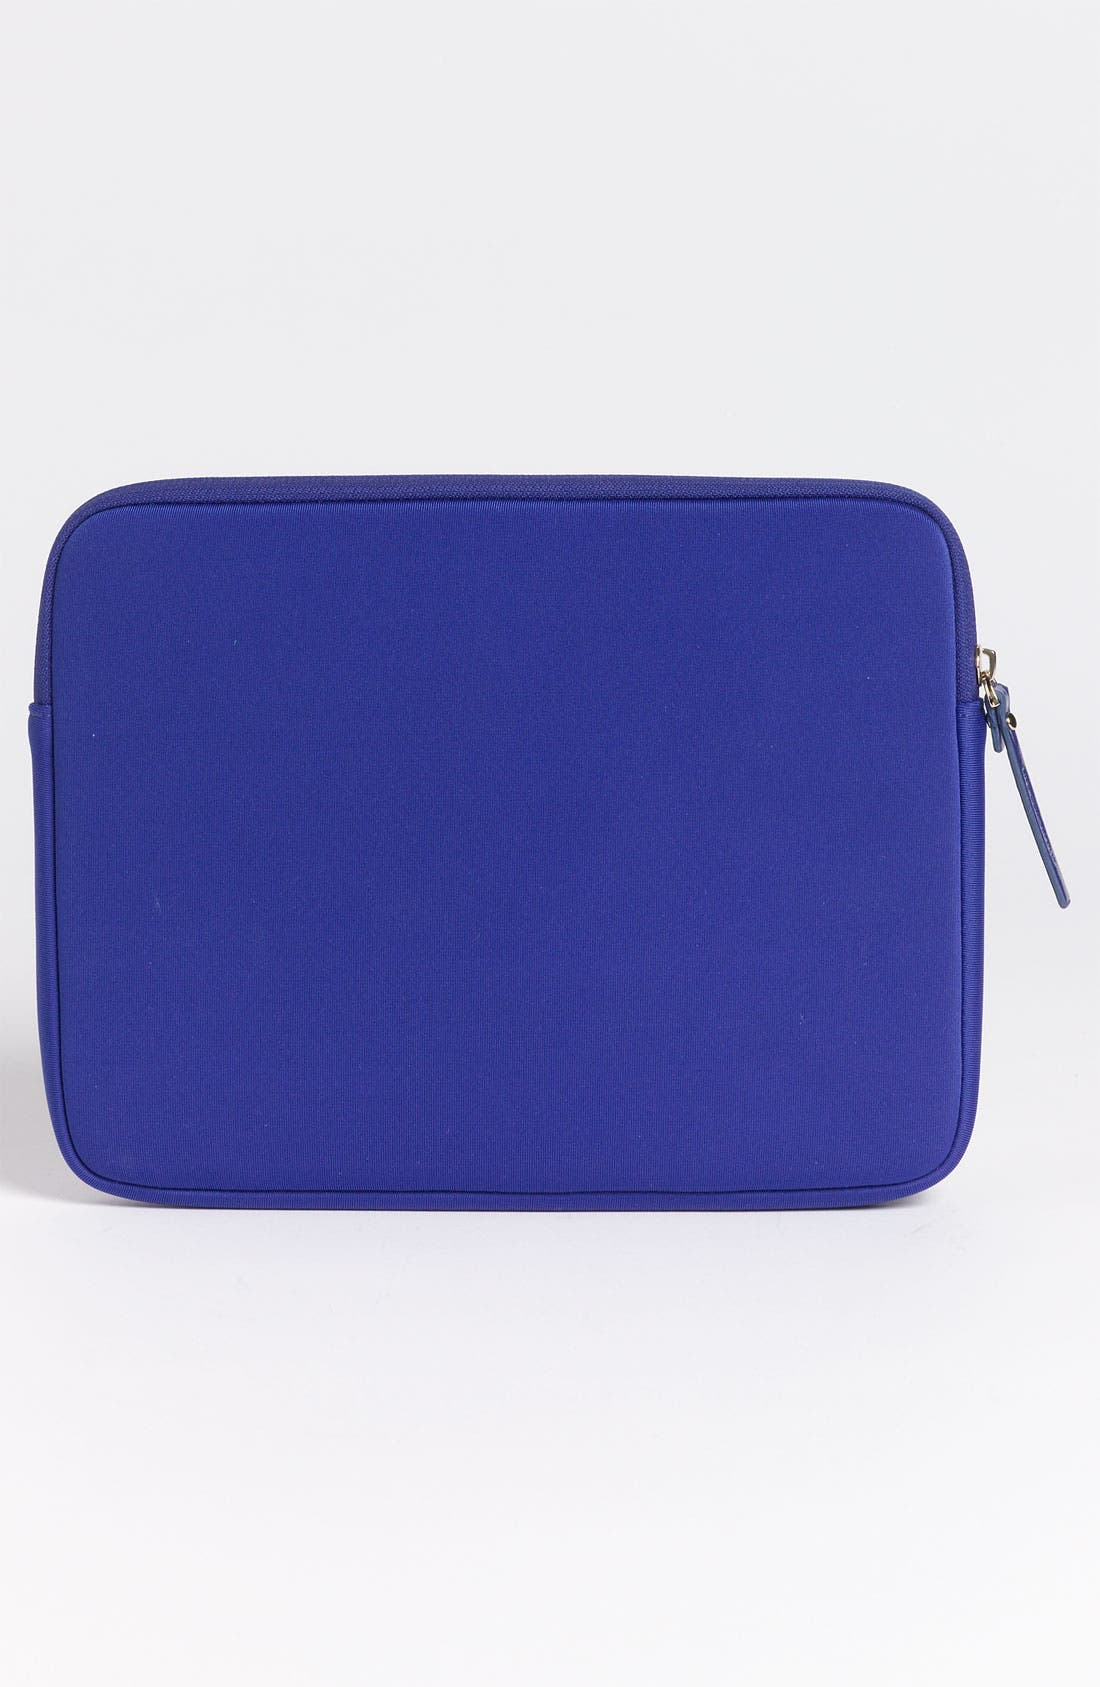 'whistle while you work' iPad sleeve,                             Alternate thumbnail 4, color,                             Cobalt